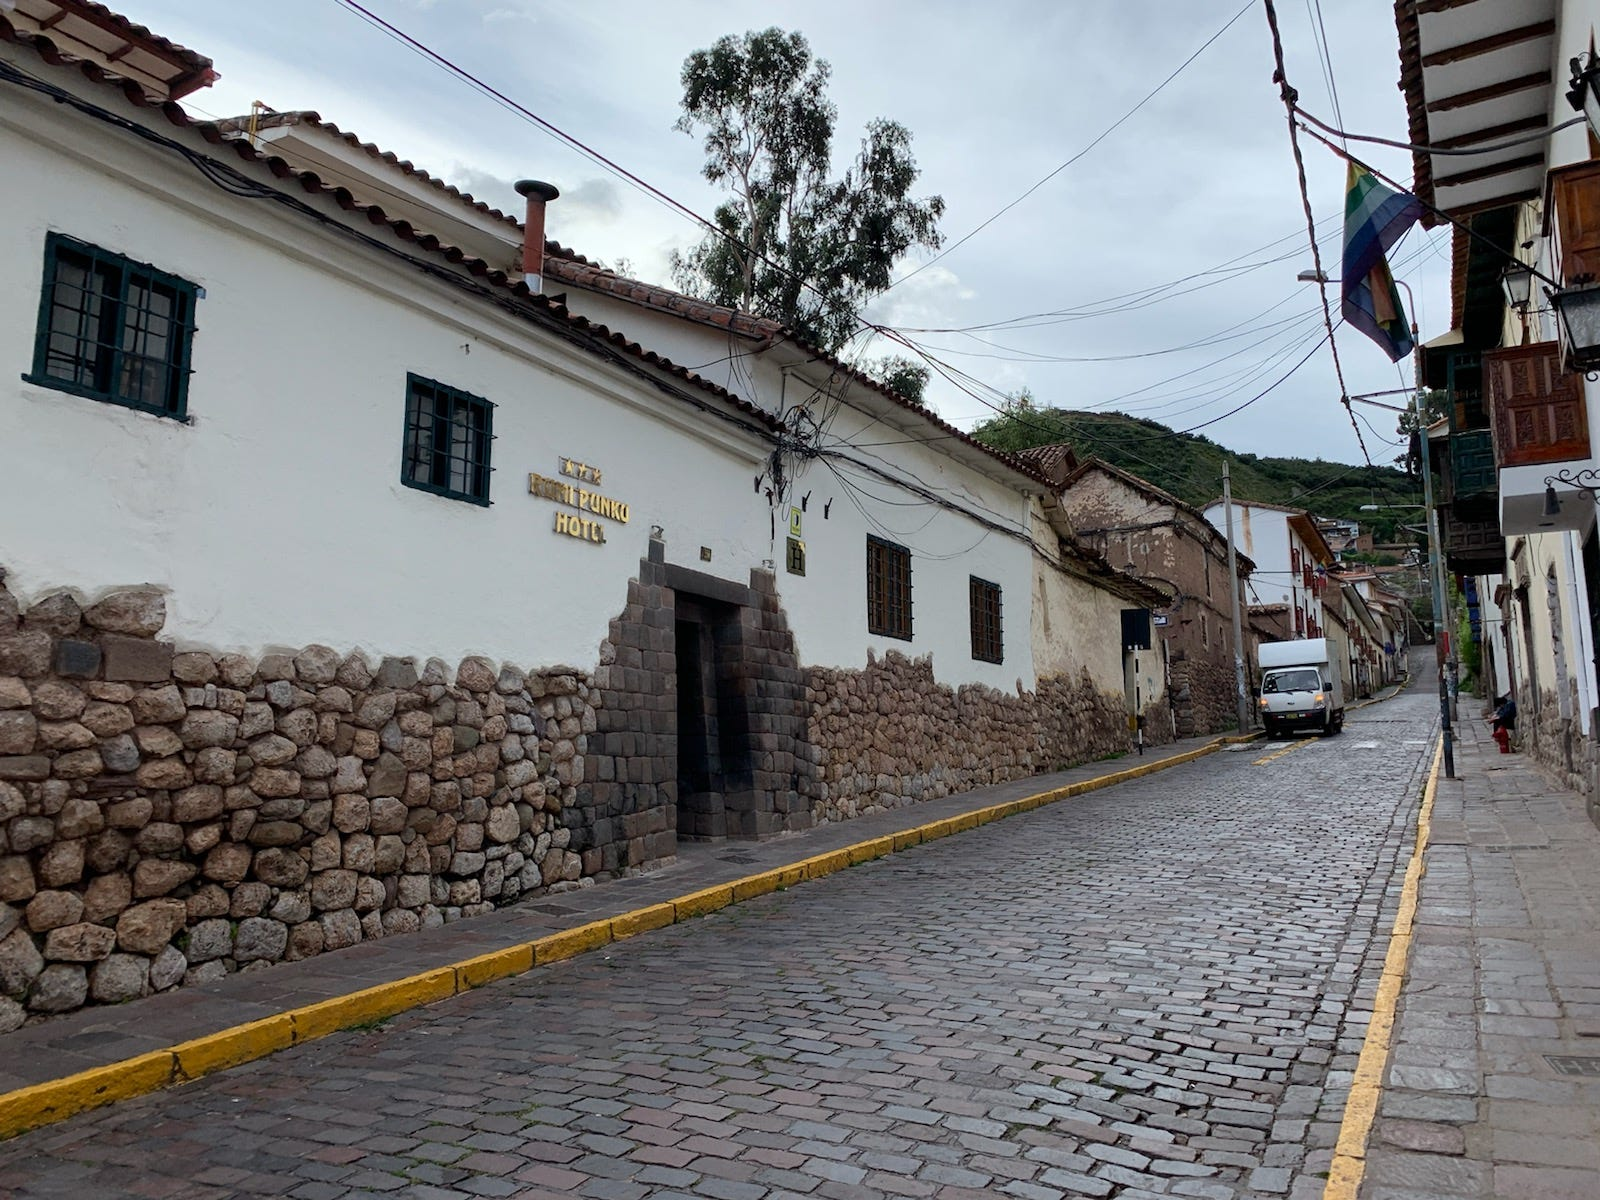 The historic city of Cusco is picturesque, with cobbles streets and cathedrals nestled among the mountains. Jonathan and Melissa Robbins, of Nashville, are staying on the pictured street in a hotel room with an en-suite kitchen that allows them to cook at home.